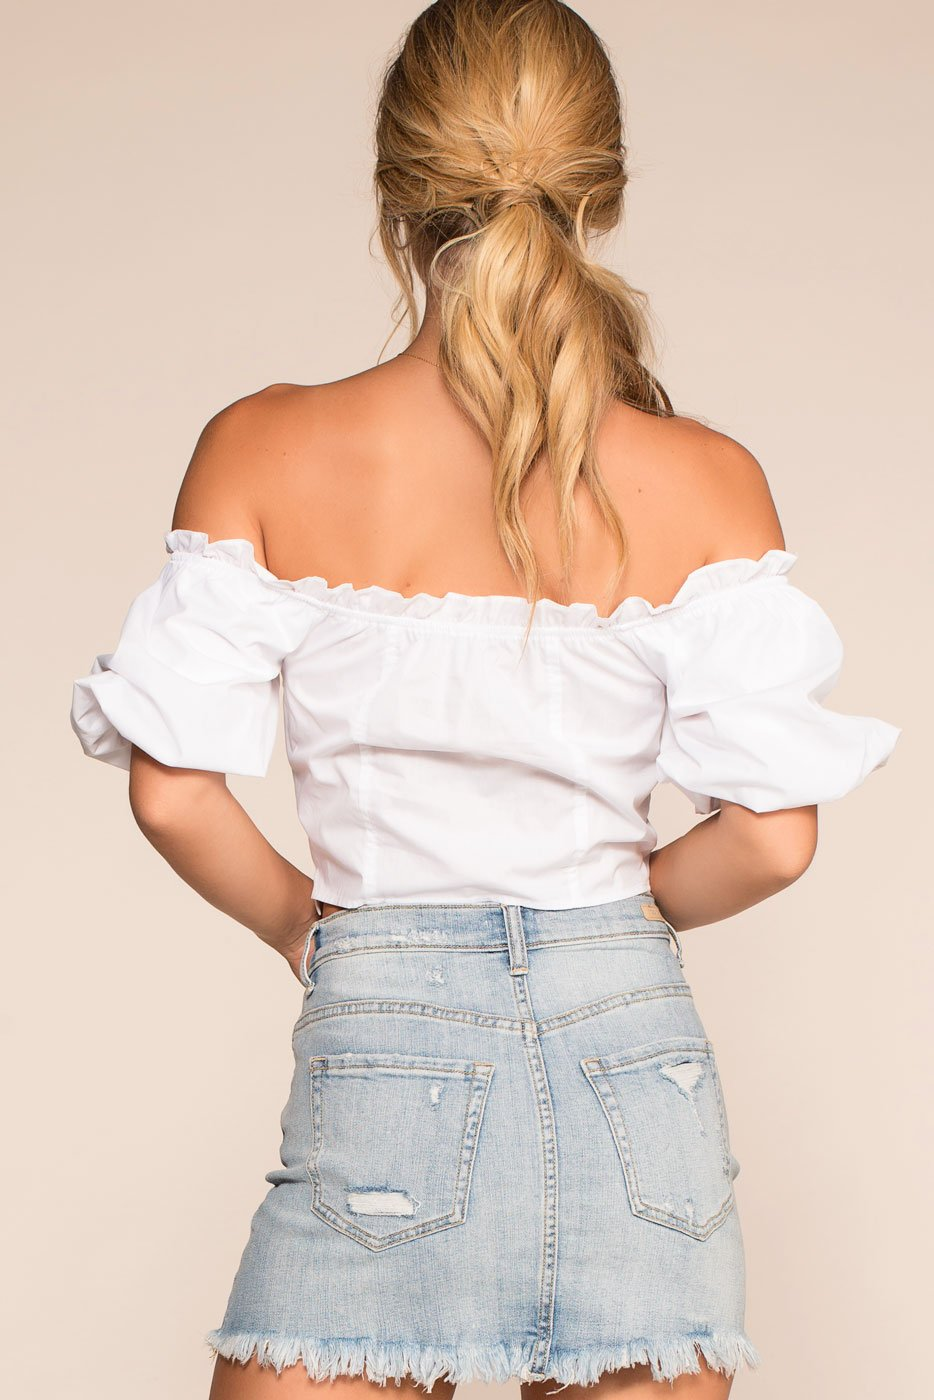 Tops - Mia Off The Shoulder Crop Top - White